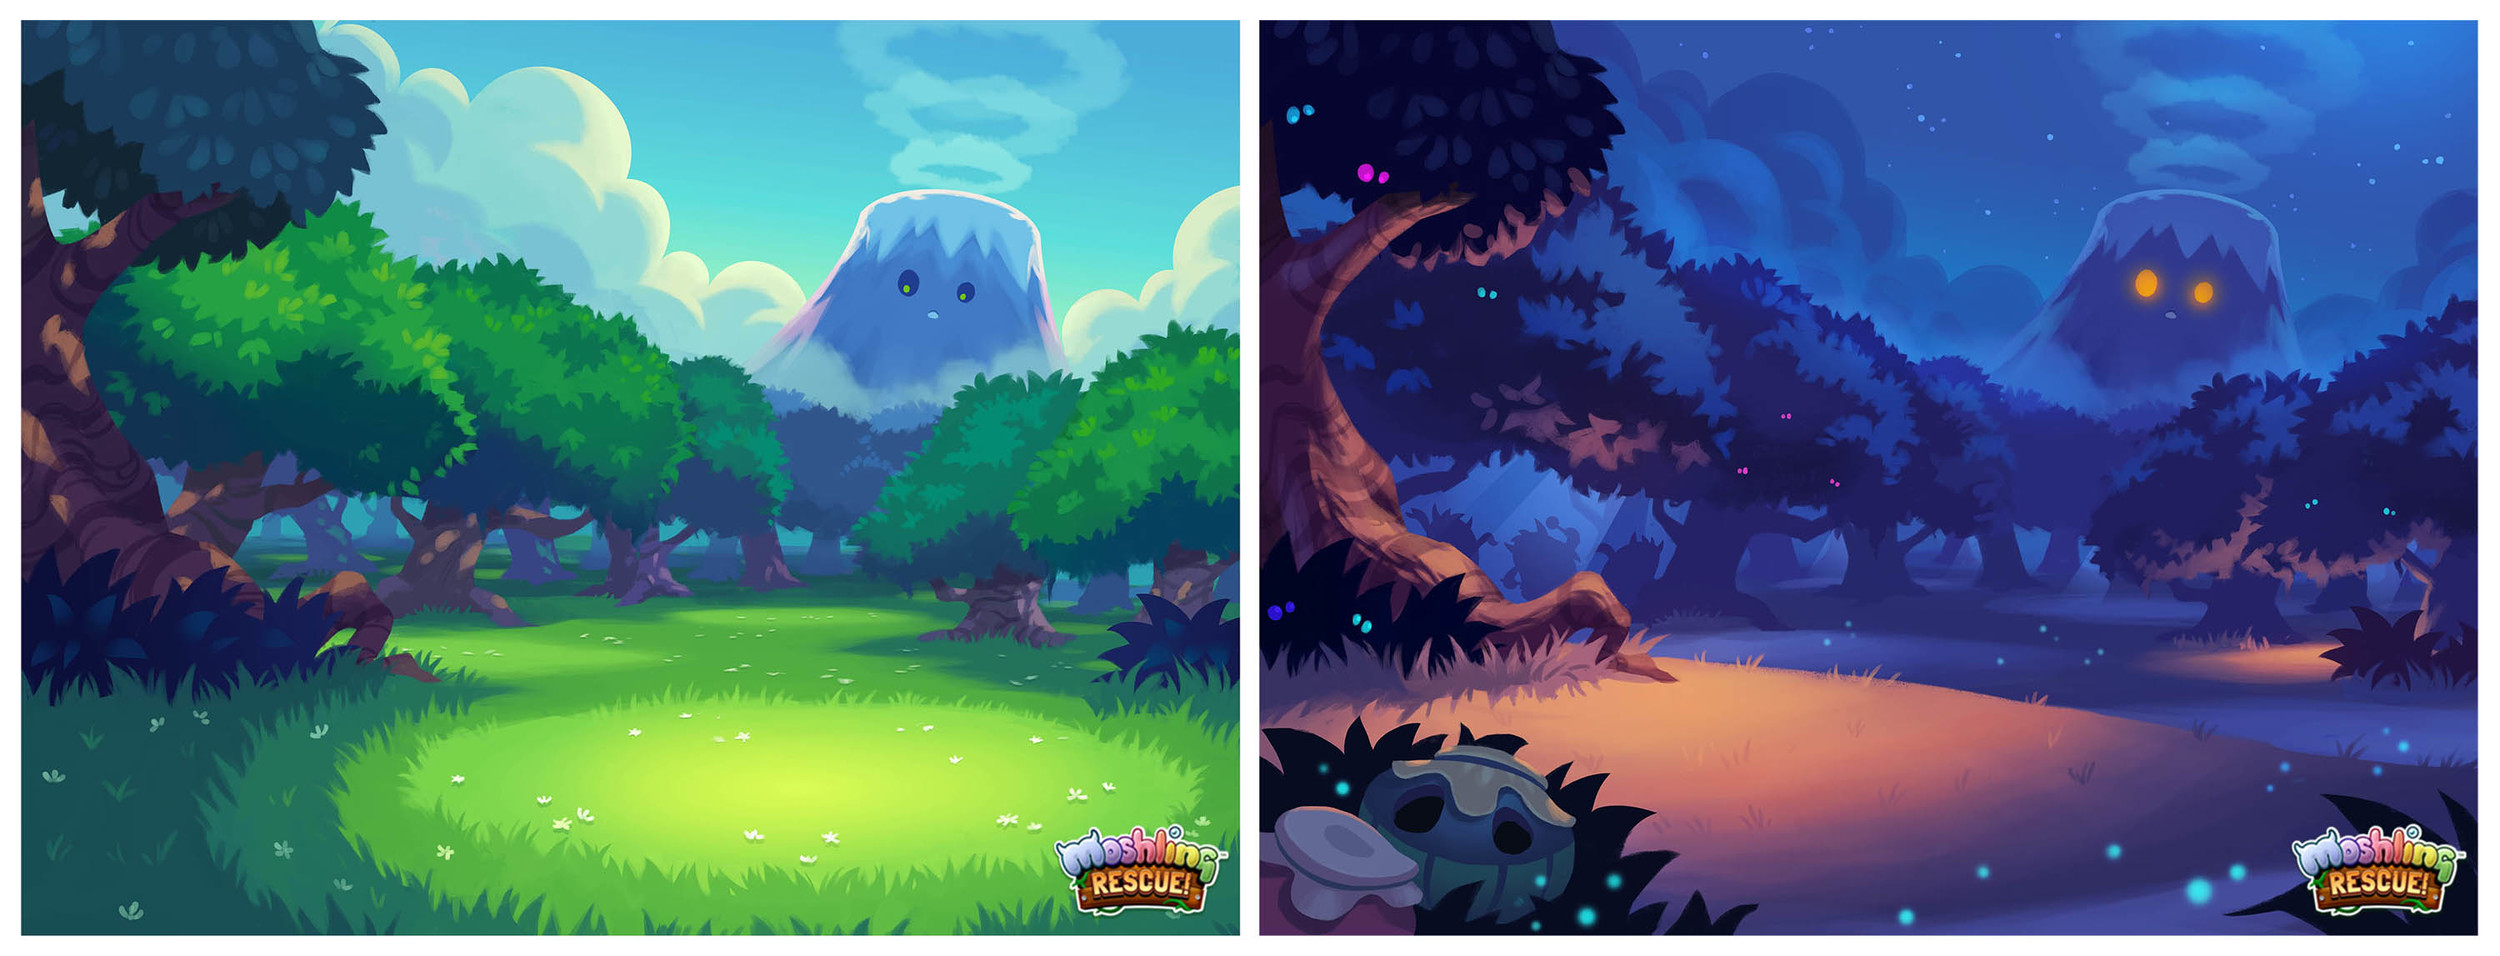 Day and night game screen backgrounds.